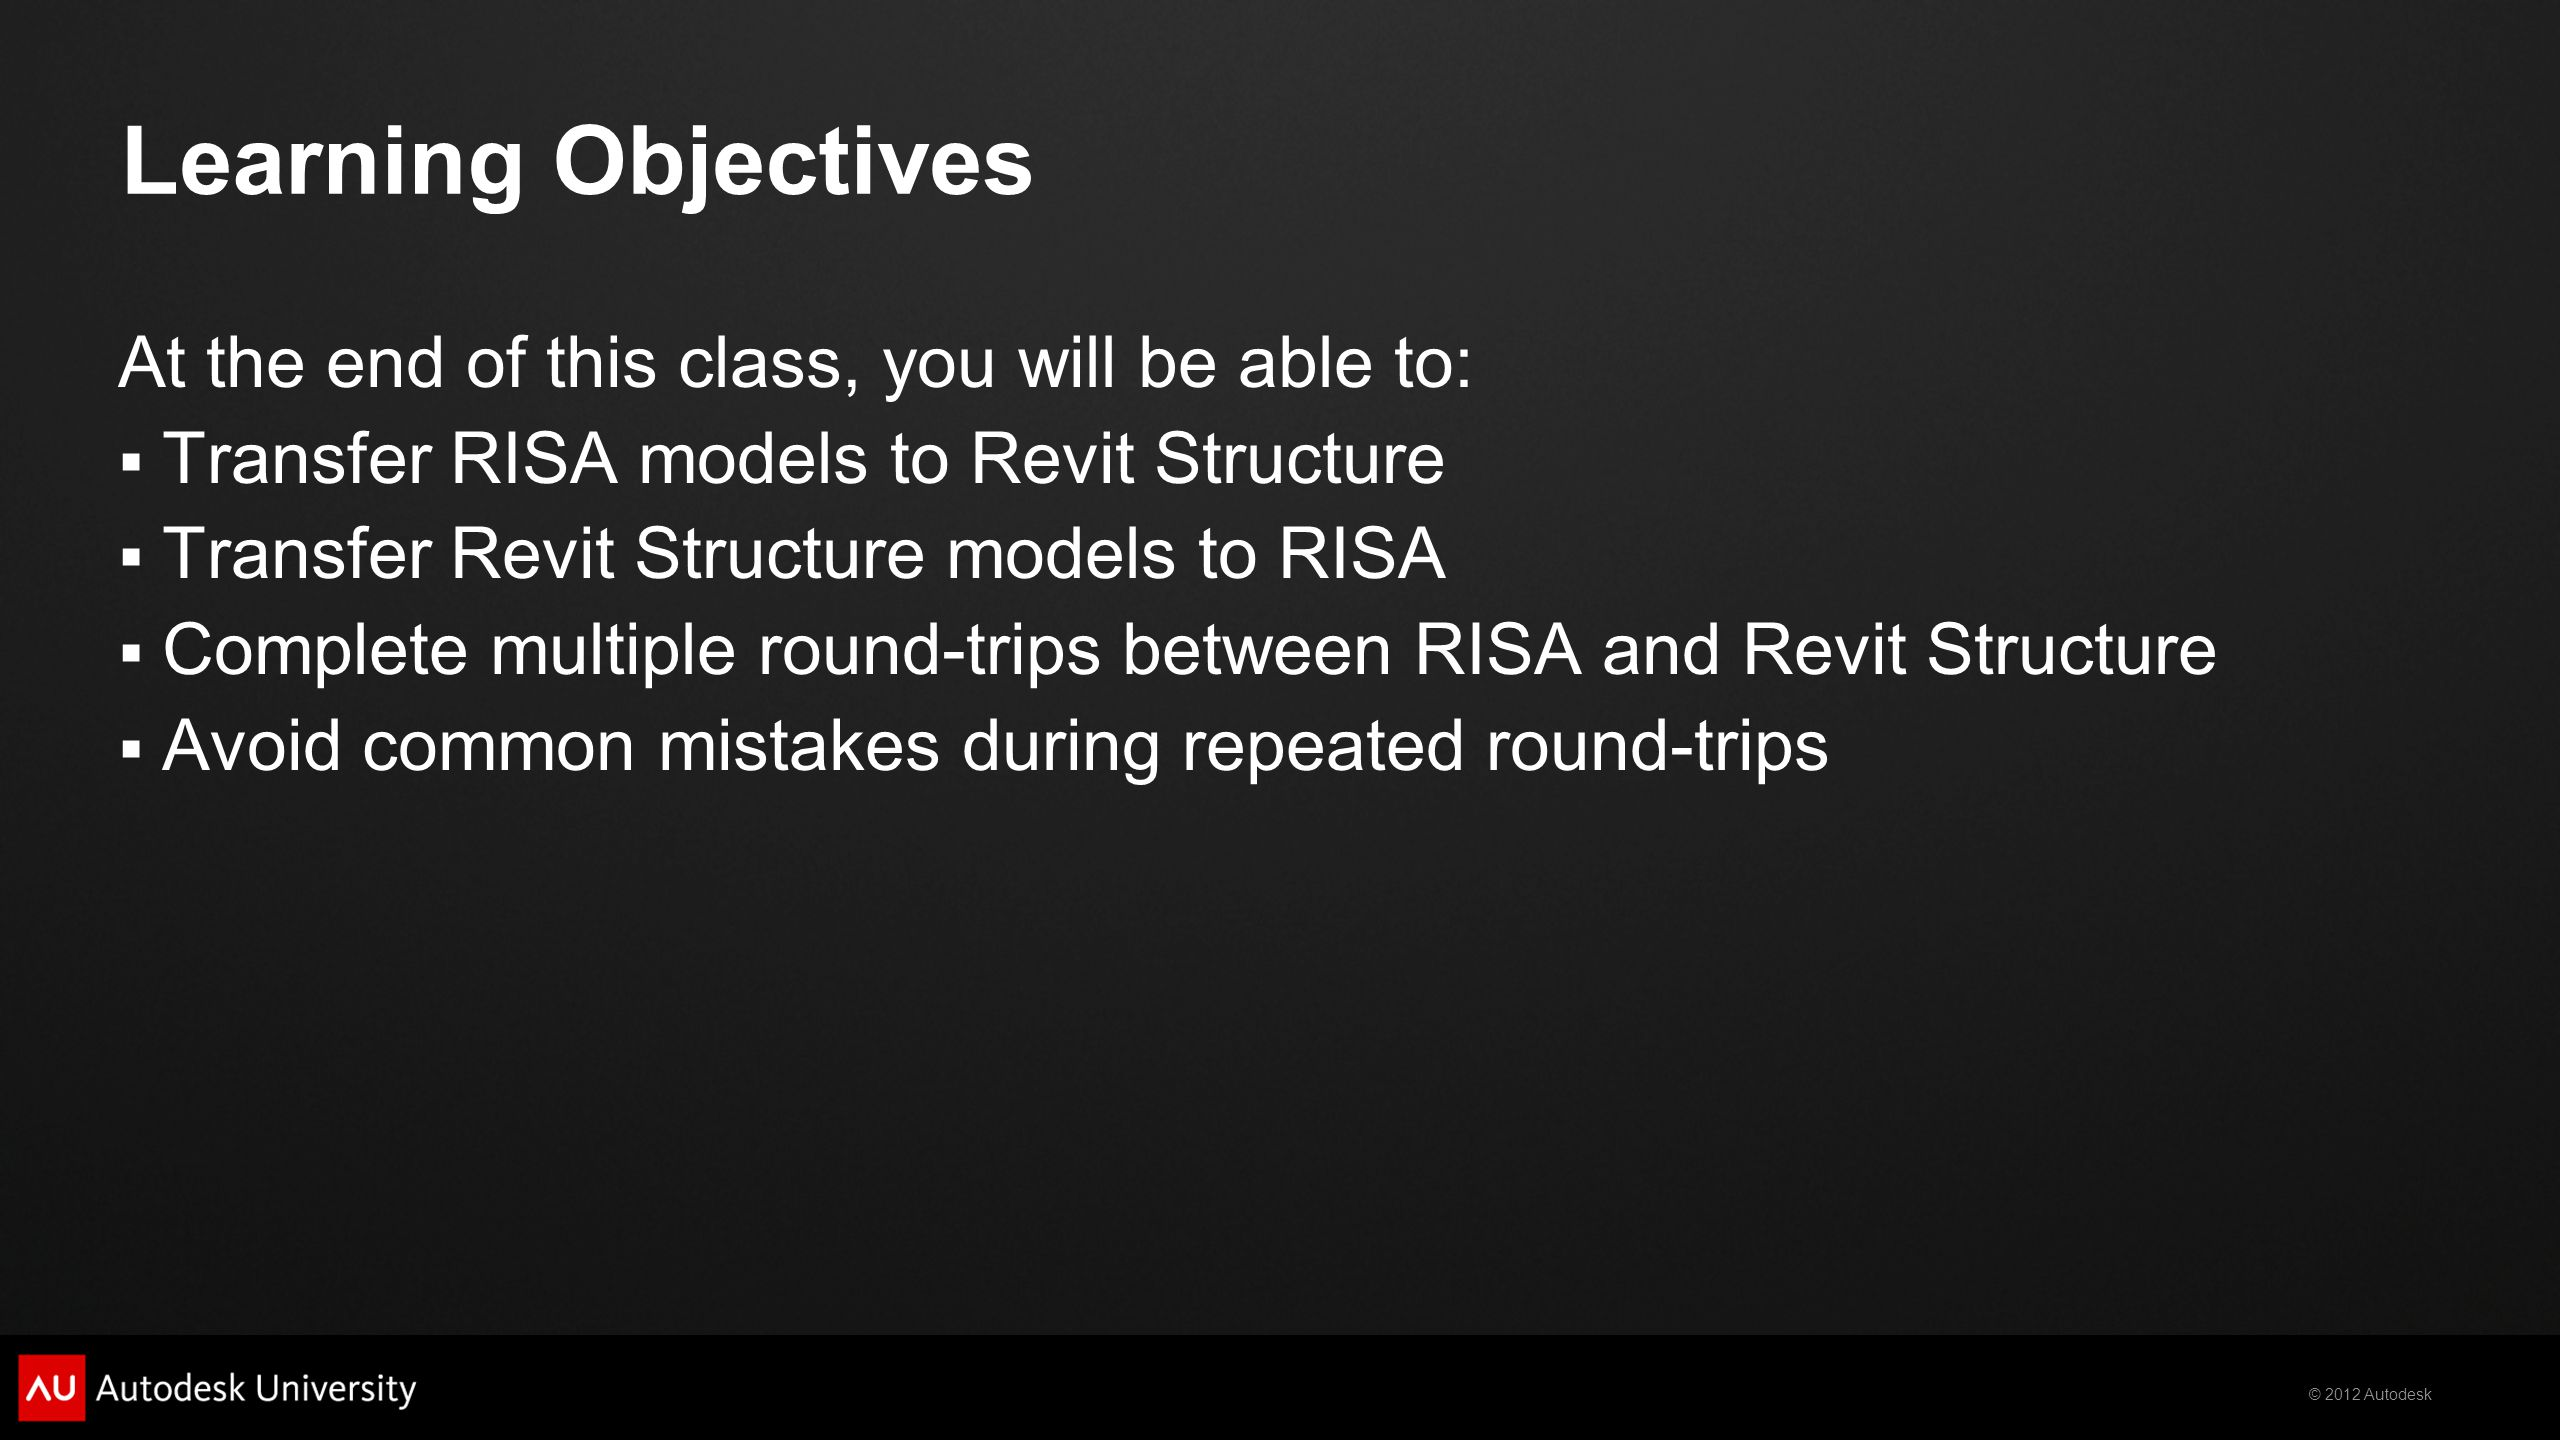 © 2012 Autodesk Learning Objectives At the end of this class, you will be able to:  Transfer RISA models to Revit Structure  Transfer Revit Structure models to RISA  Complete multiple round-trips between RISA and Revit Structure  Avoid common mistakes during repeated round-trips